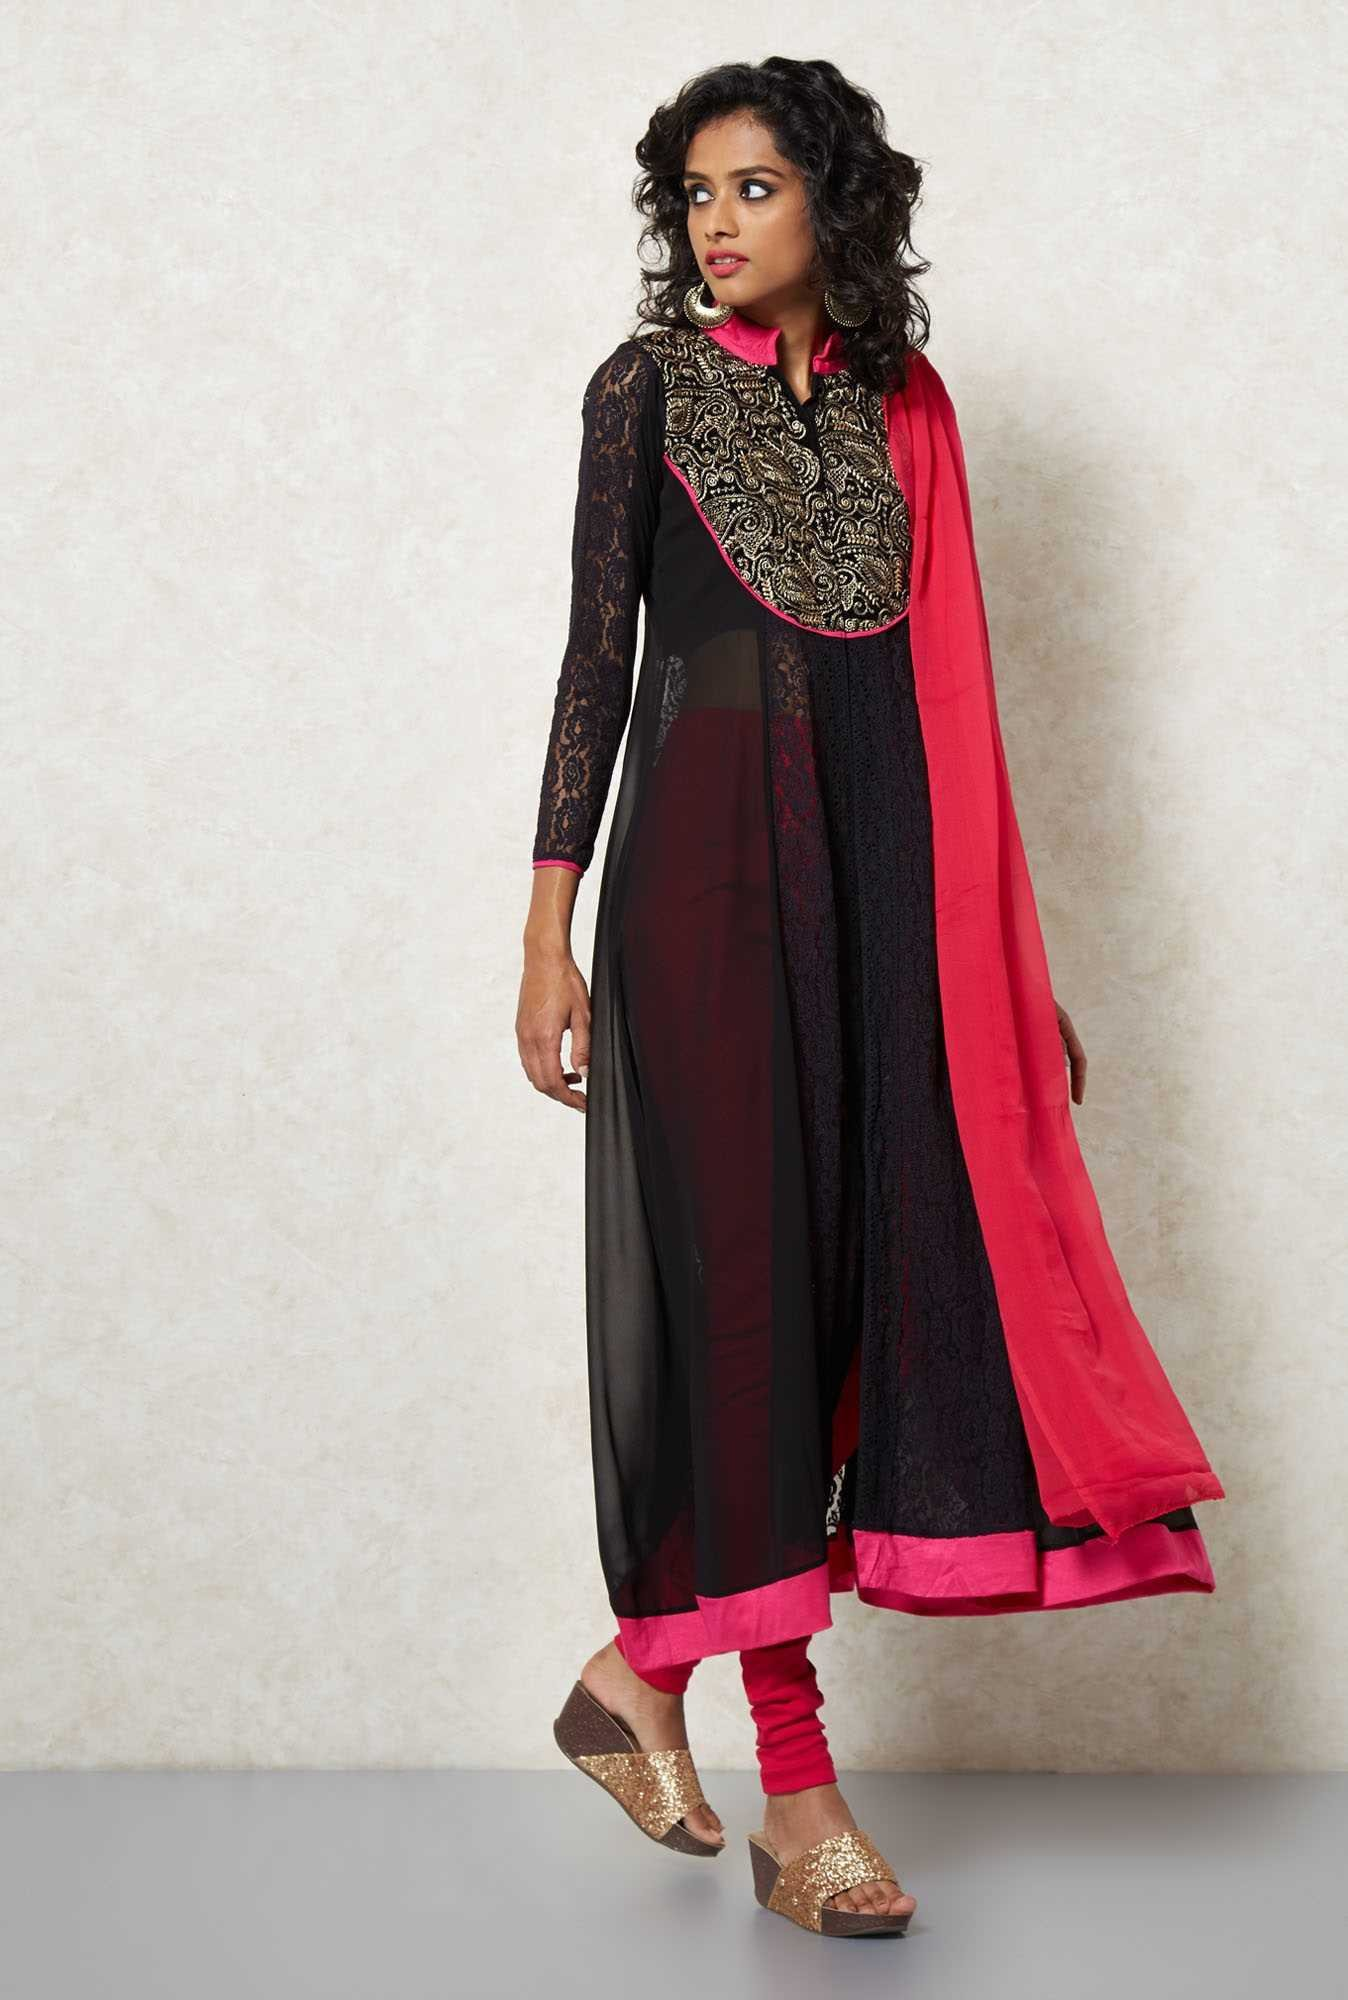 Ira Soleil Black Embroidered Anarkali Set